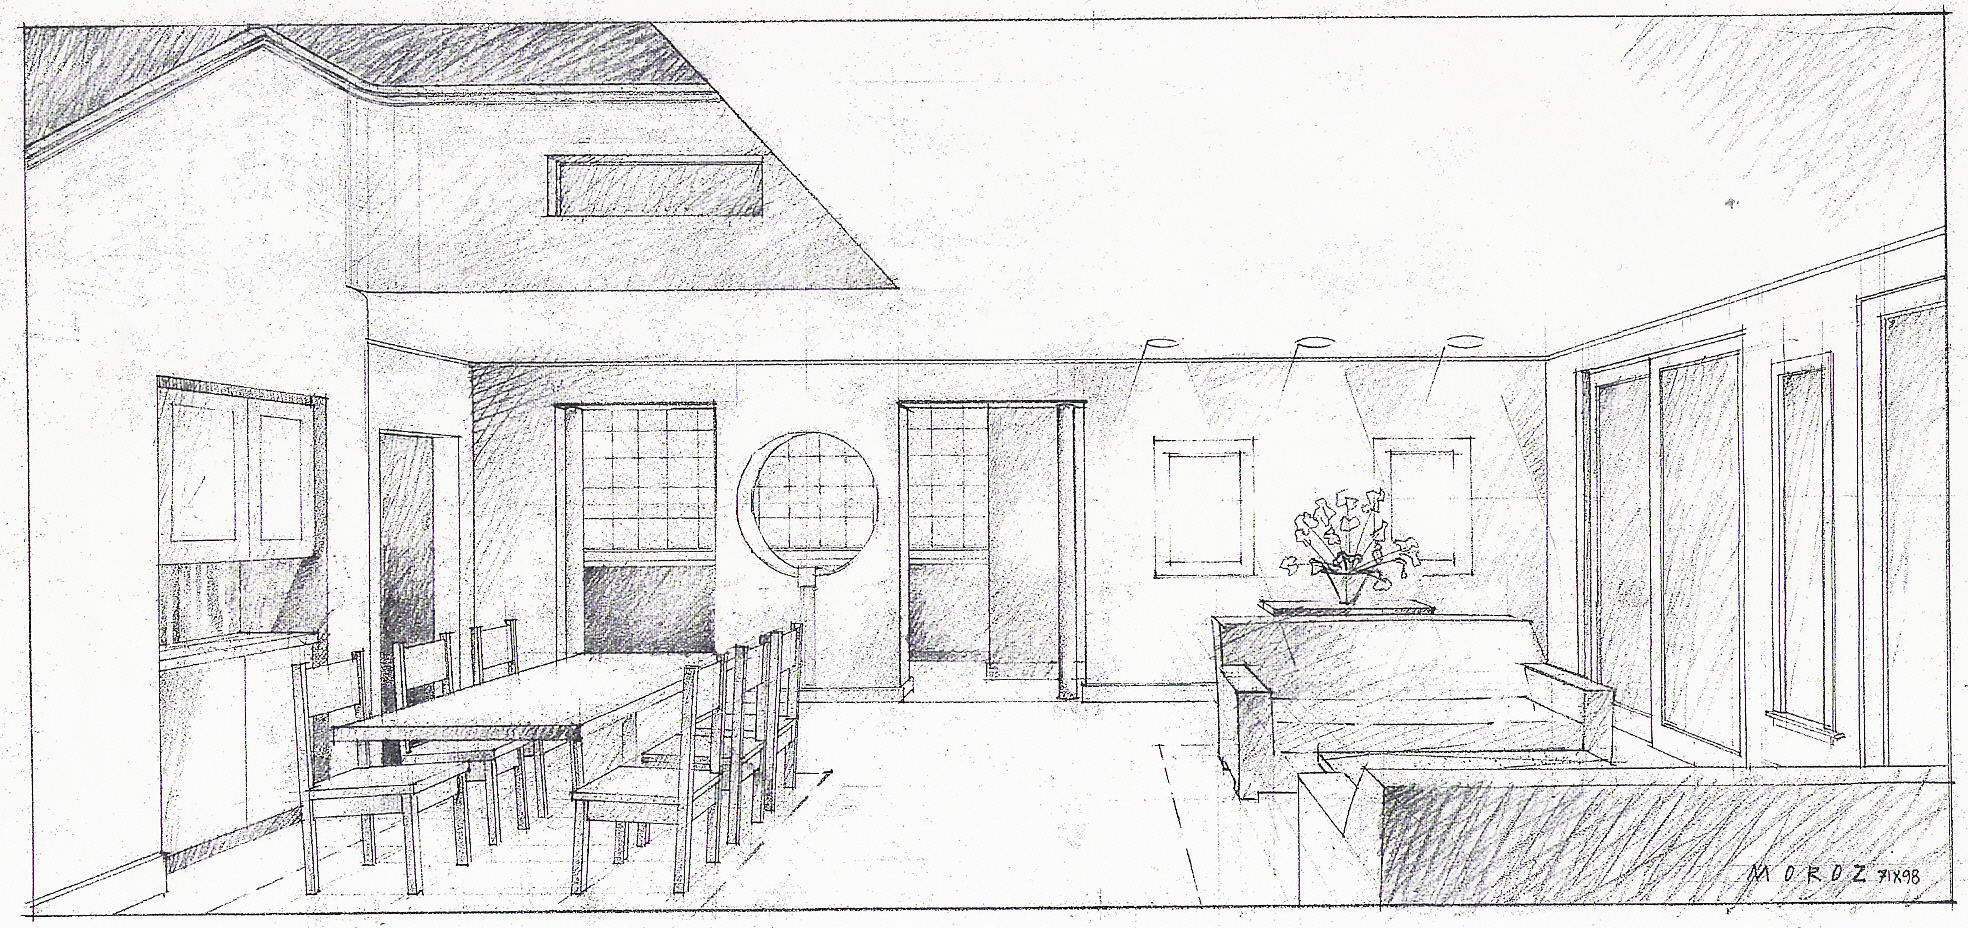 Sketch house inside images galleries for House sketches from photos